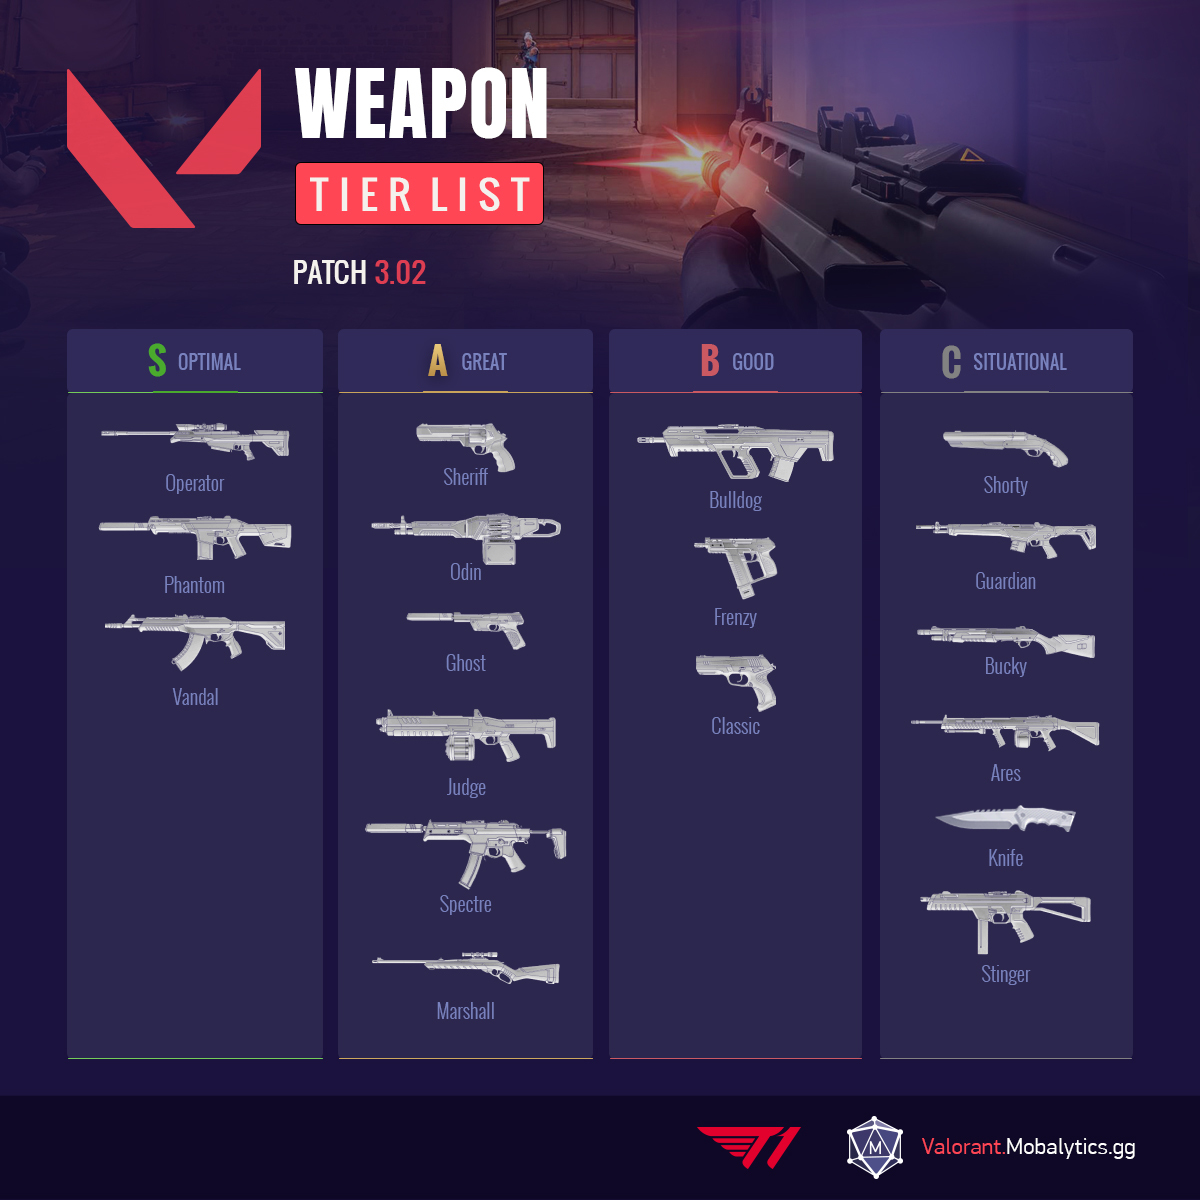 Weapon Tier List Patch 3.02